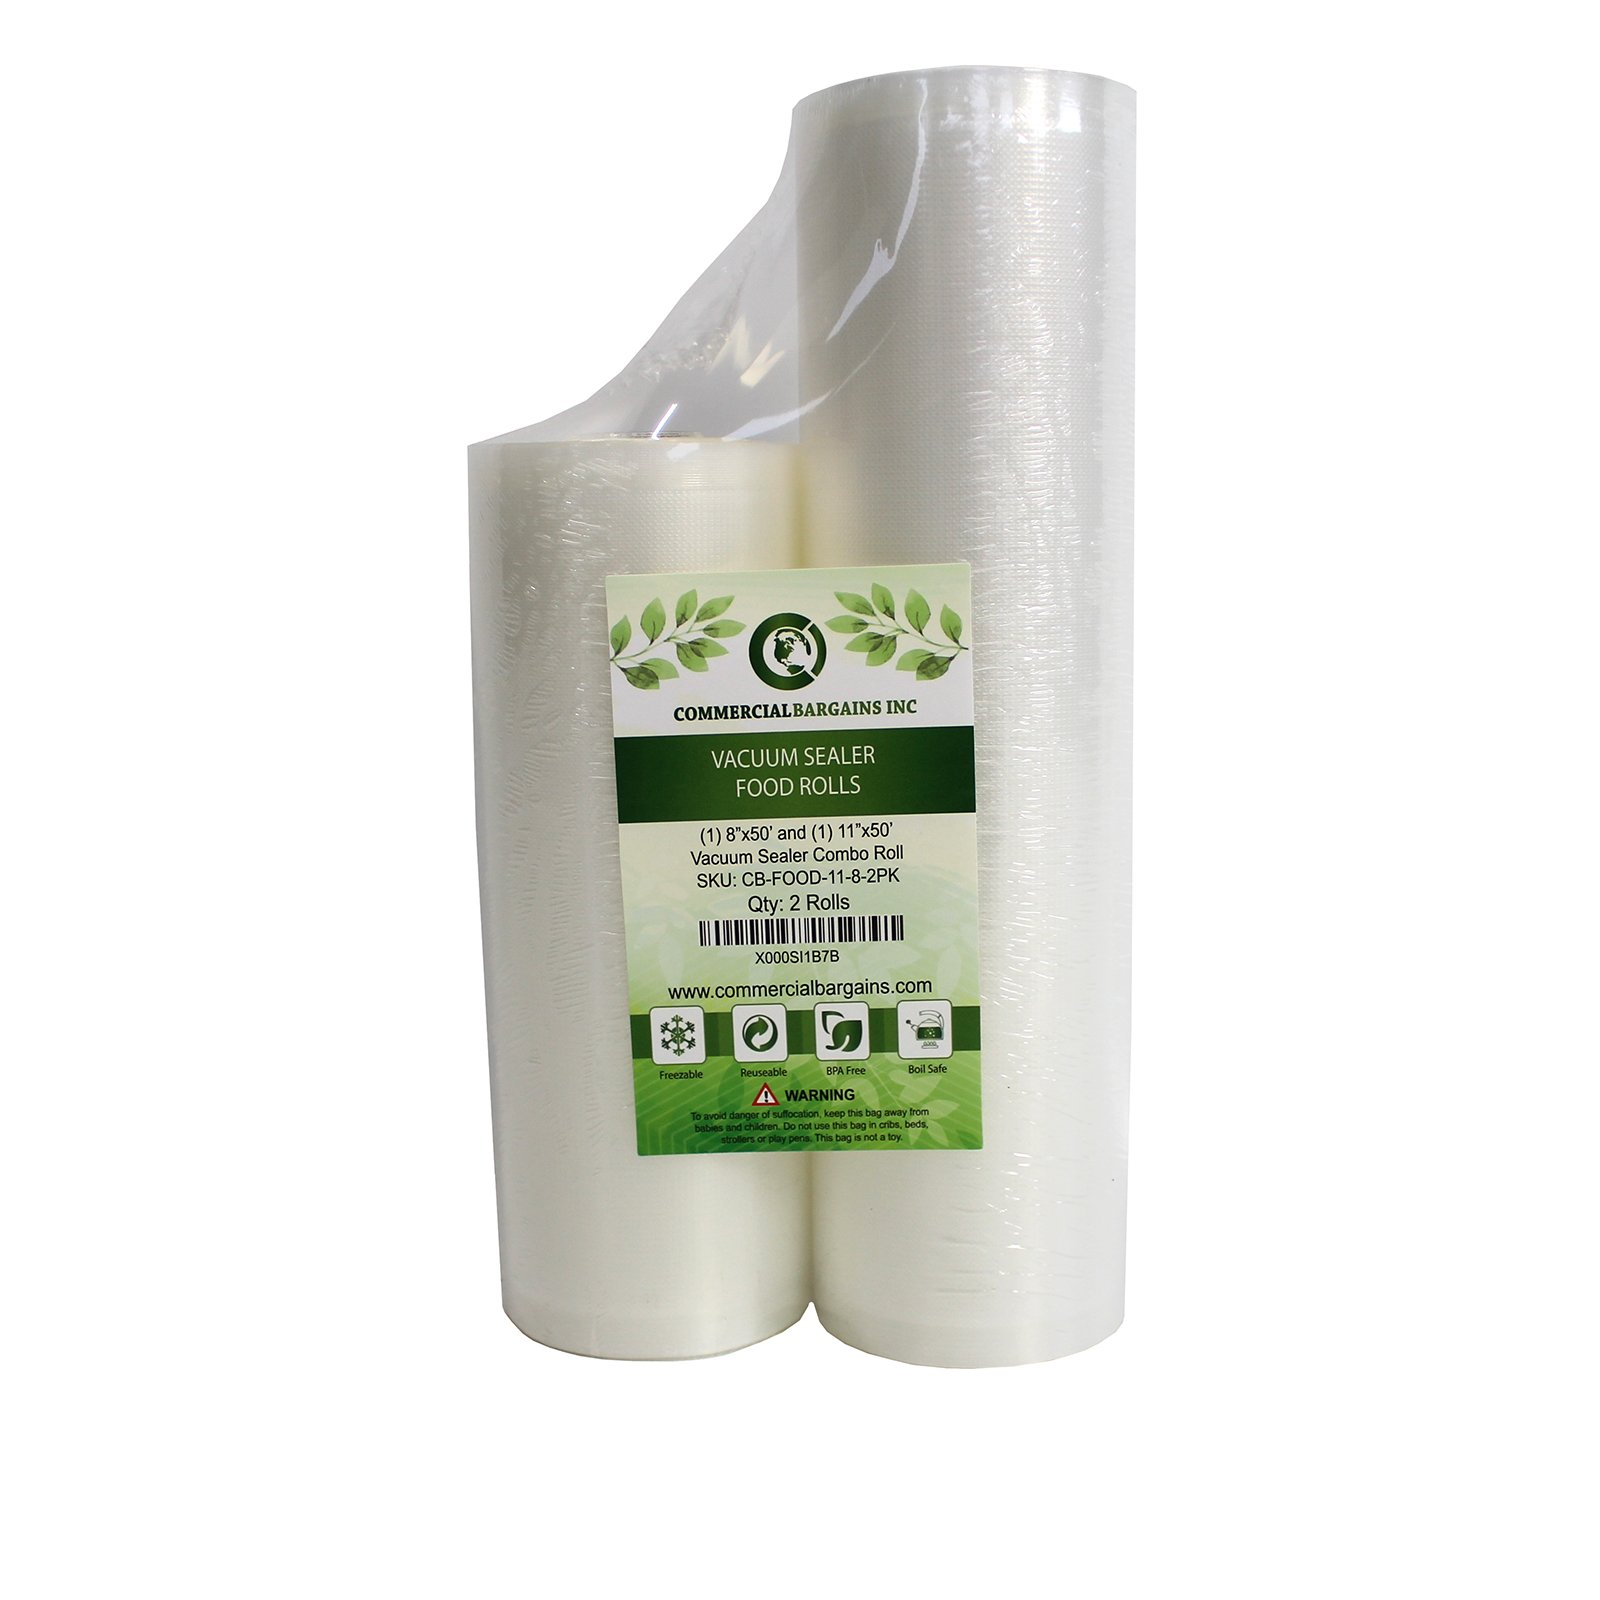 Commercial Bargains 11'' x 50' and 8'' x 50' Commercial Vacuum Sealer Saver Rolls Food Storage by Commercial Bargains (Image #1)